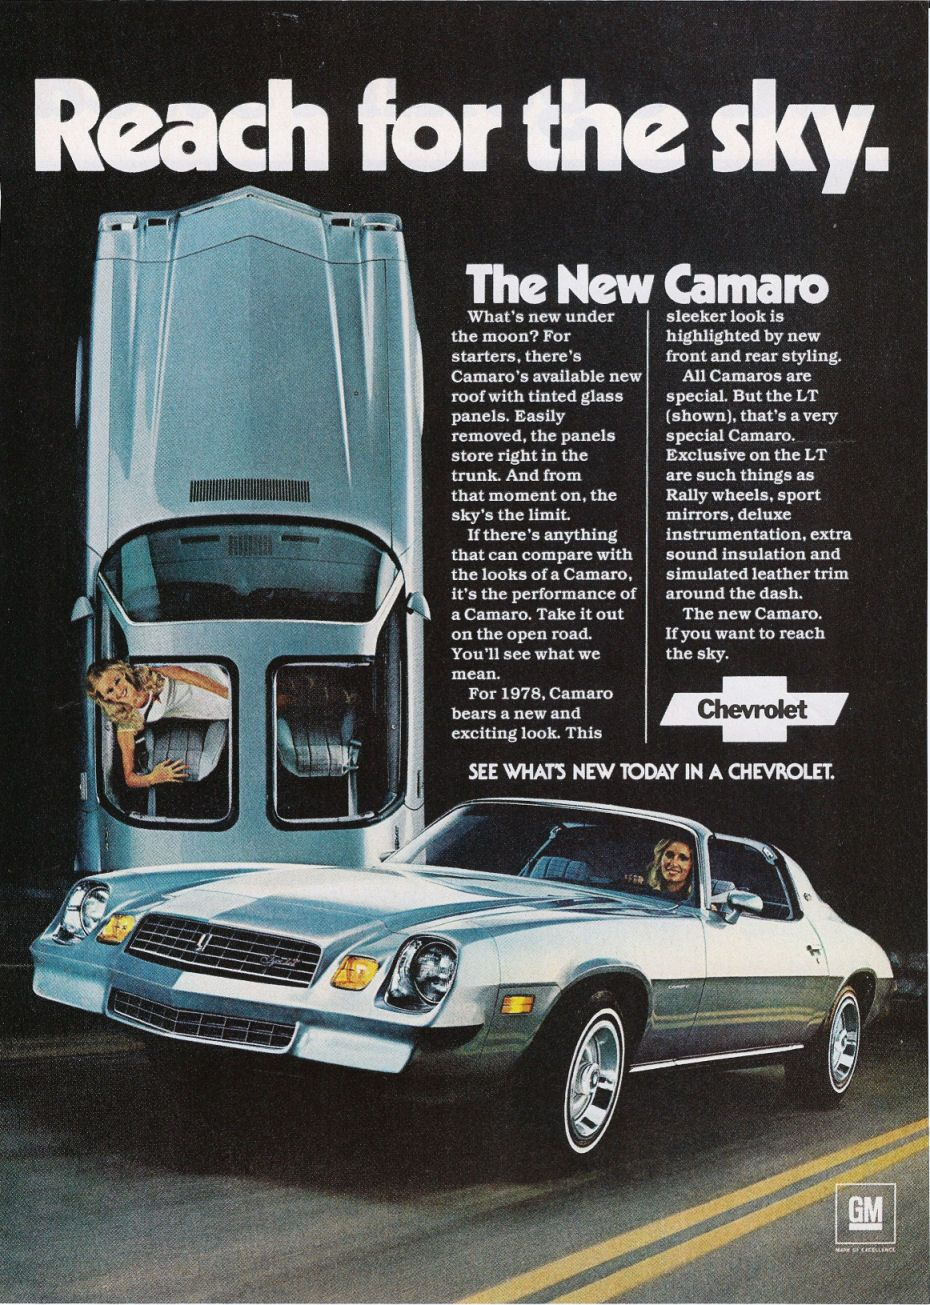 T Tops Showed Up On Everything Throughout The 1970s Including Sport Coupes Like Ford Mustang In Both Pinto Based Ii And Early Fox Body